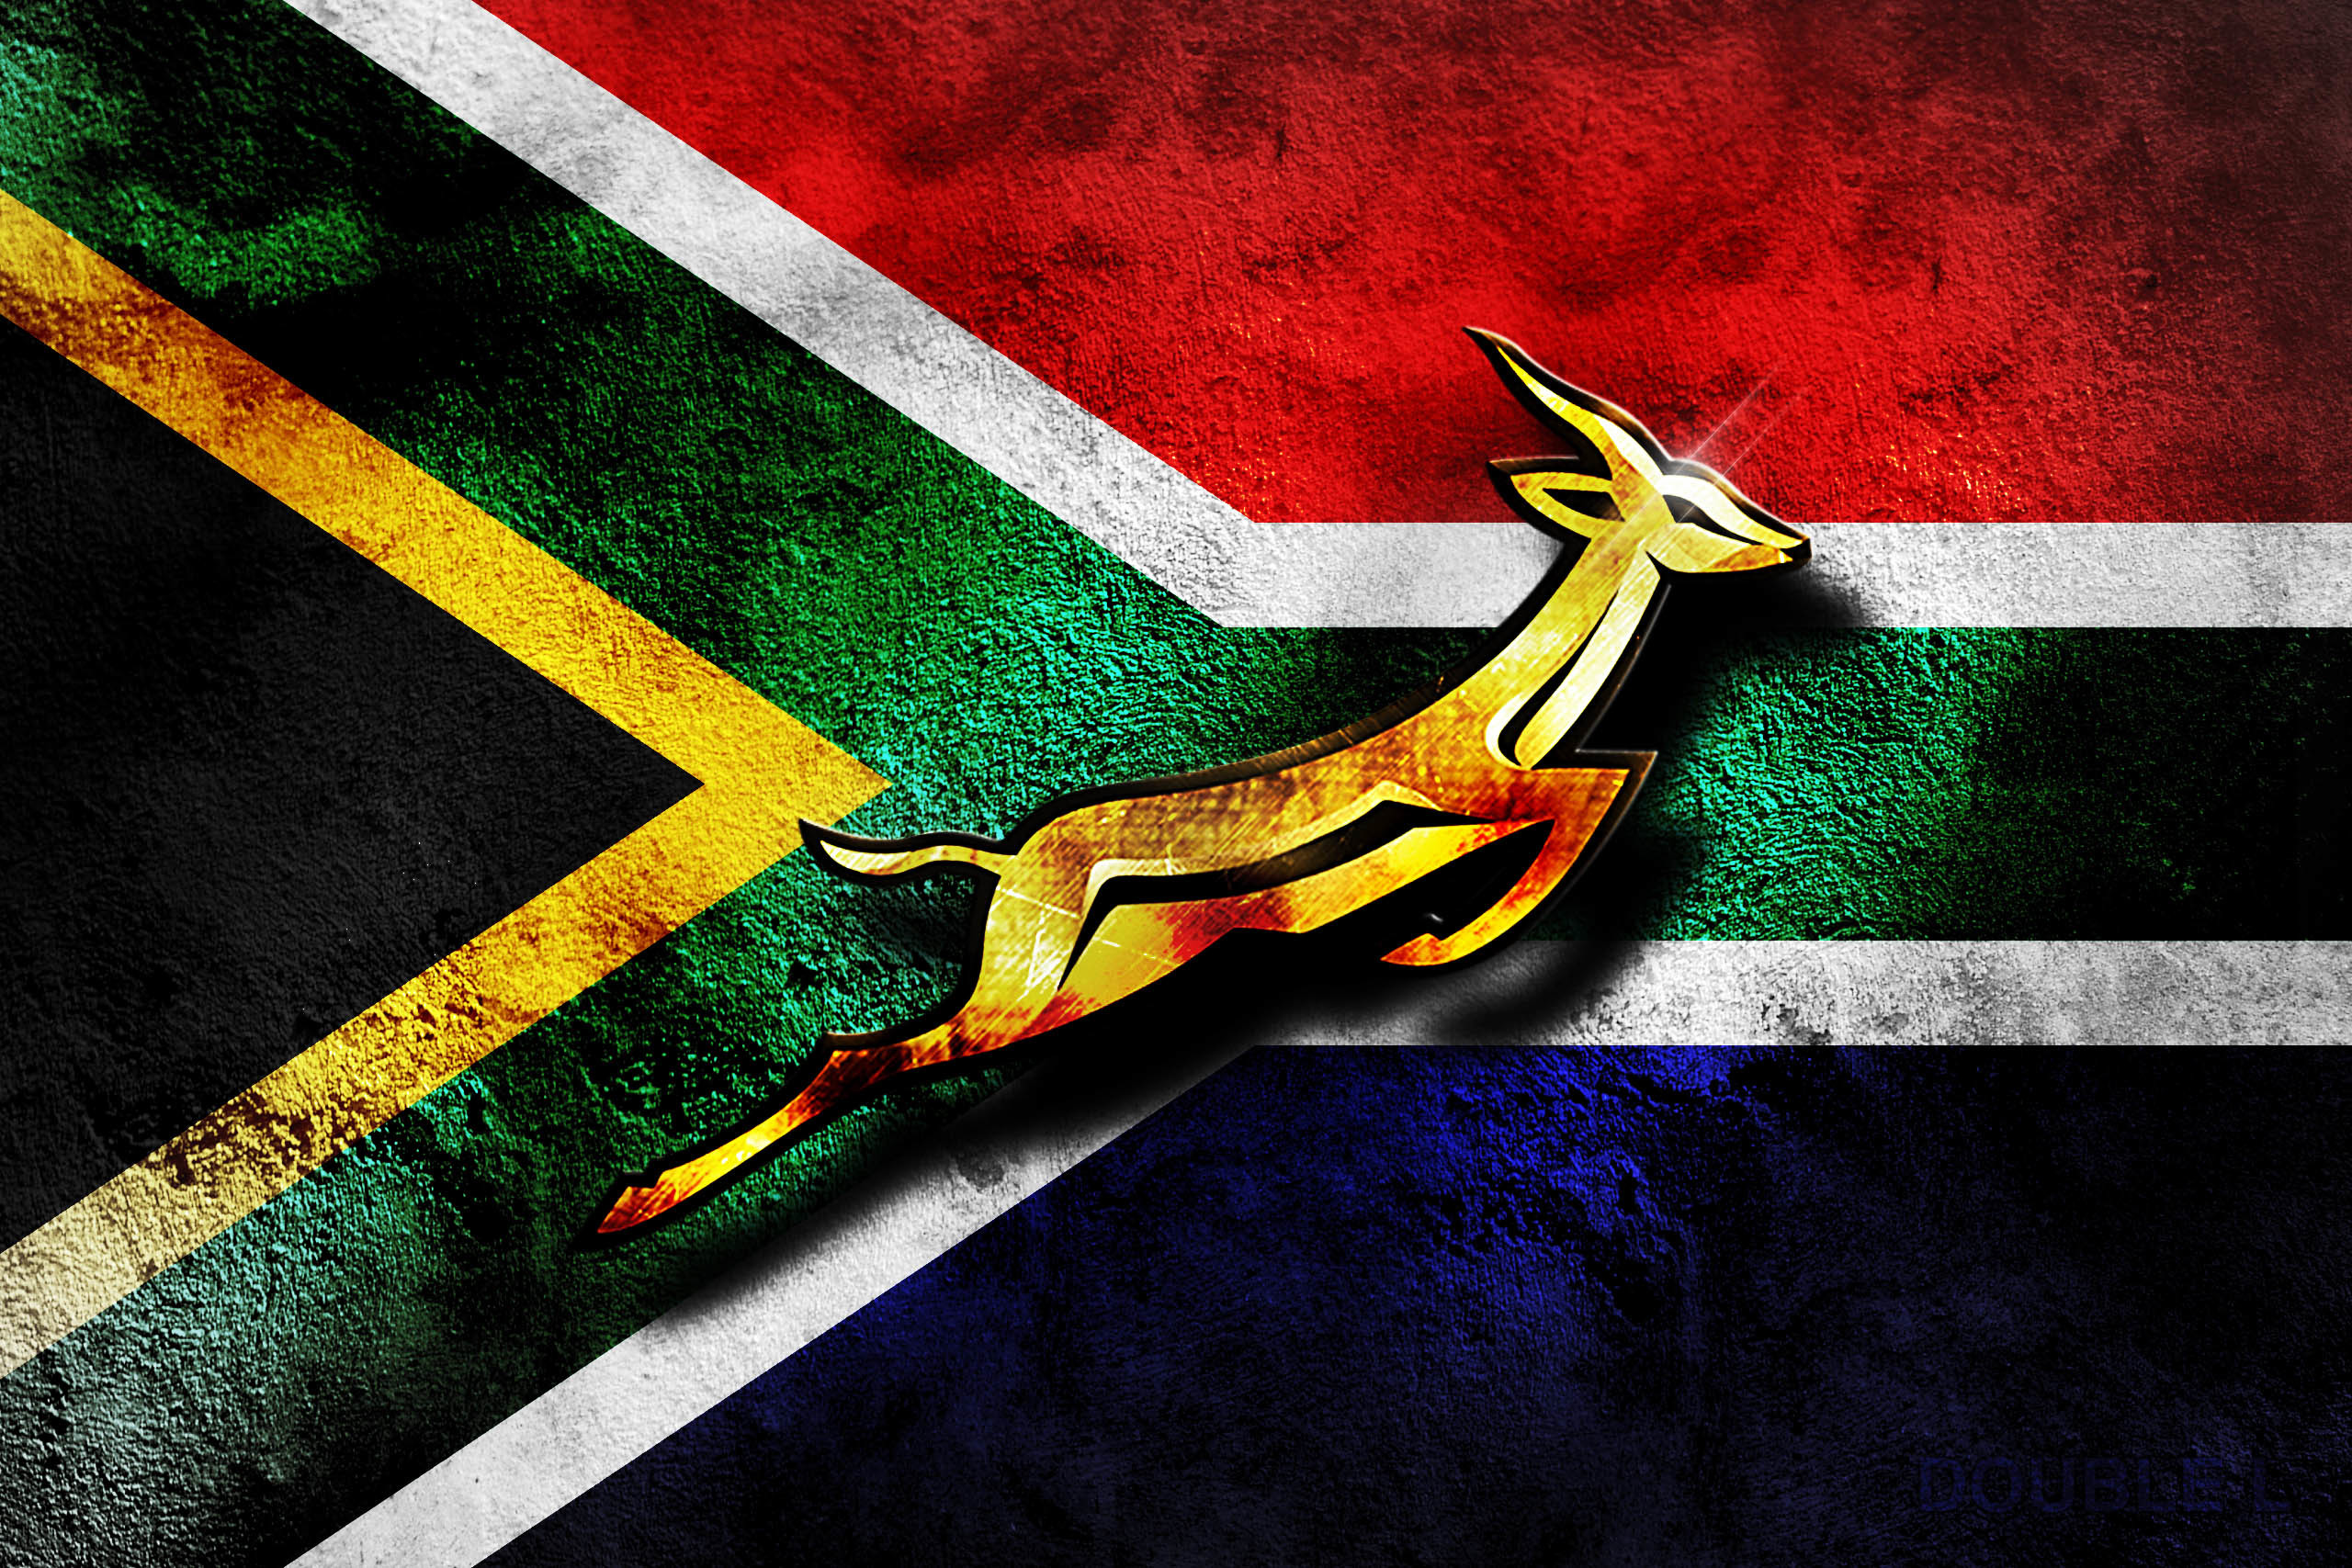 Res: 2560x1707, Ipad Images of South Africa by Refilwe Maliffe